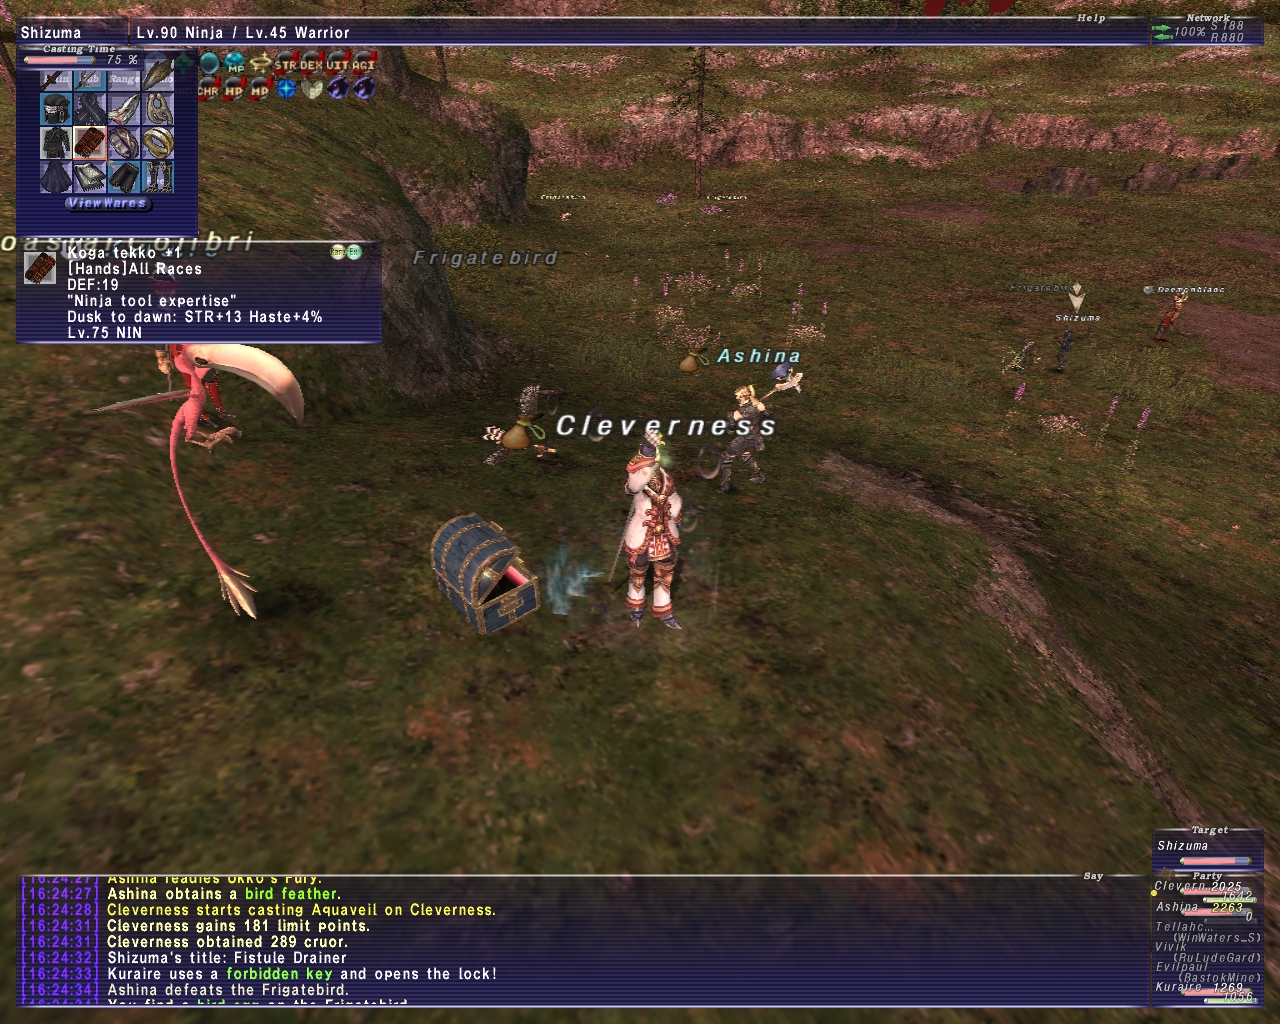 cleverness ffxi gear lv78 wear stand cares leech dolls xxii thread literally player make pics renzys gimpleeches long taking shots screen point fast killing presuming lv90s contribute mobs gonna vtit listed mooch damage contribution tier this play gimpconfusedwtf contributions